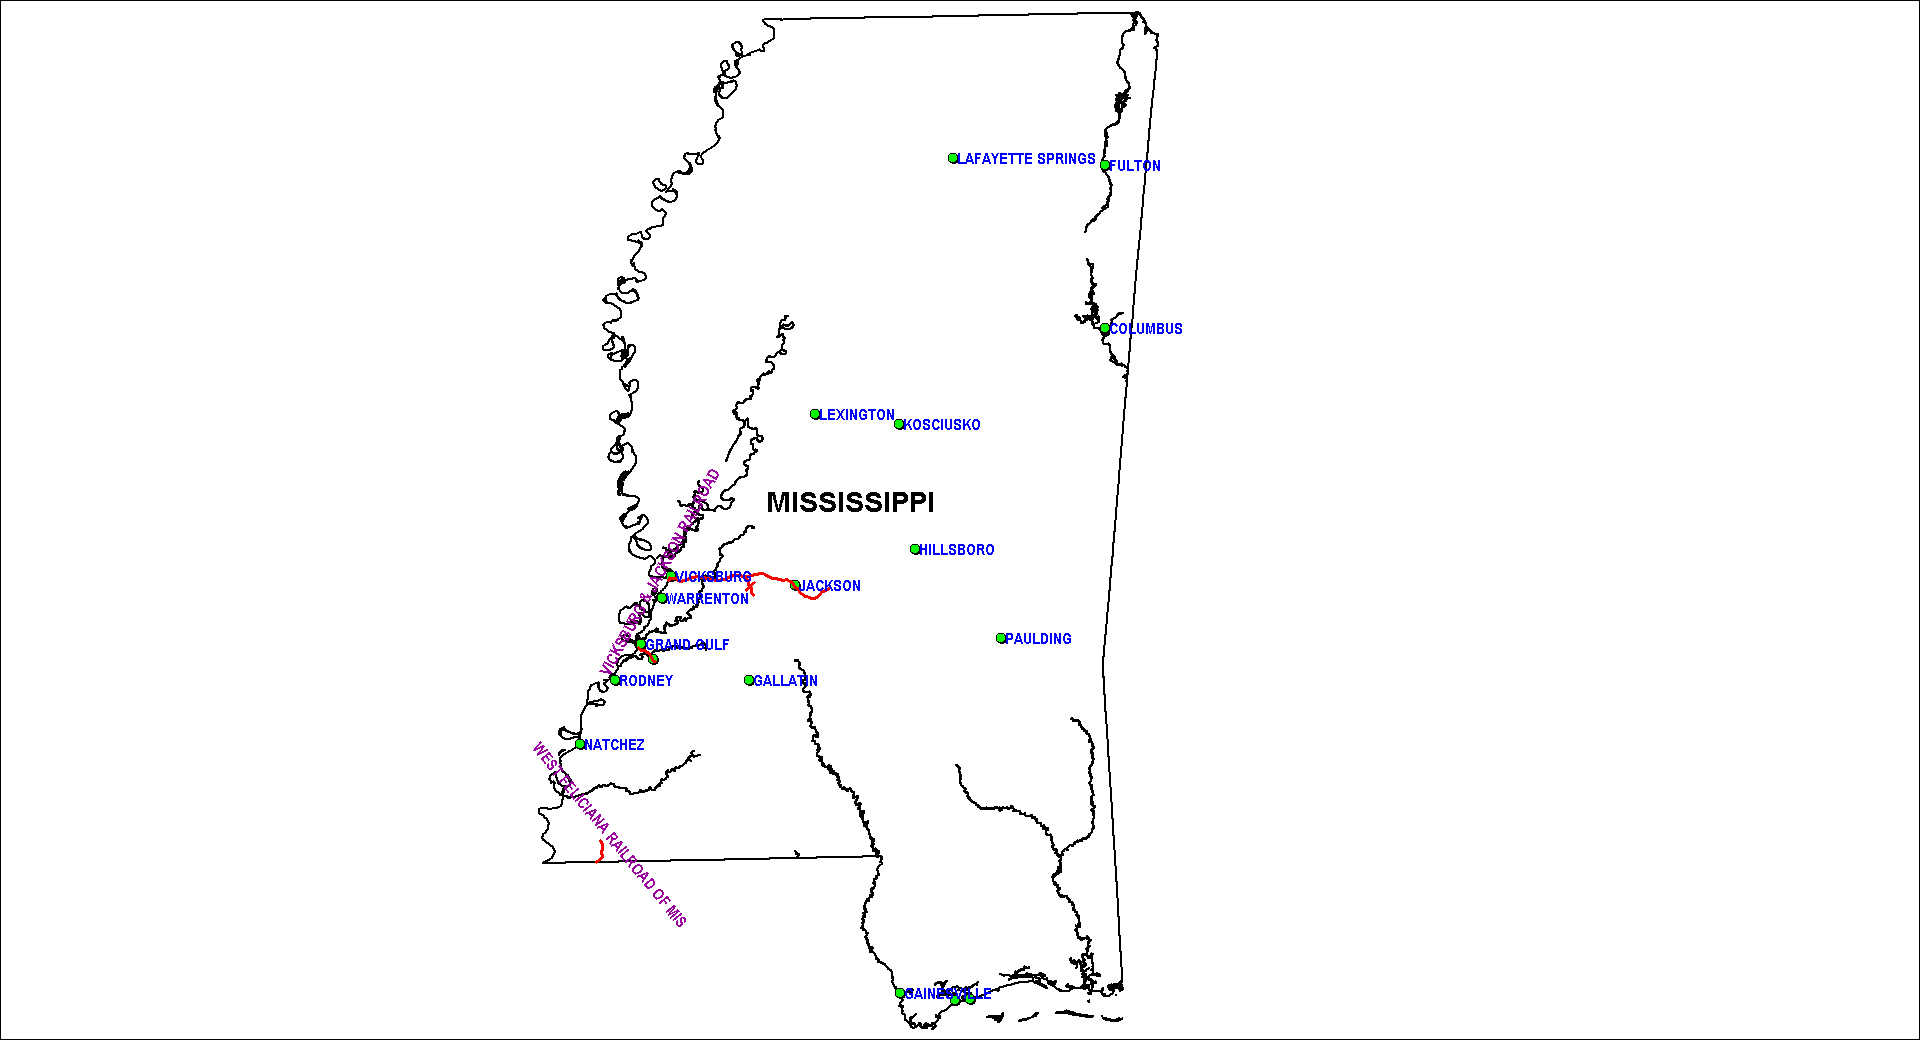 Mississippi Railroad Map as of 1850